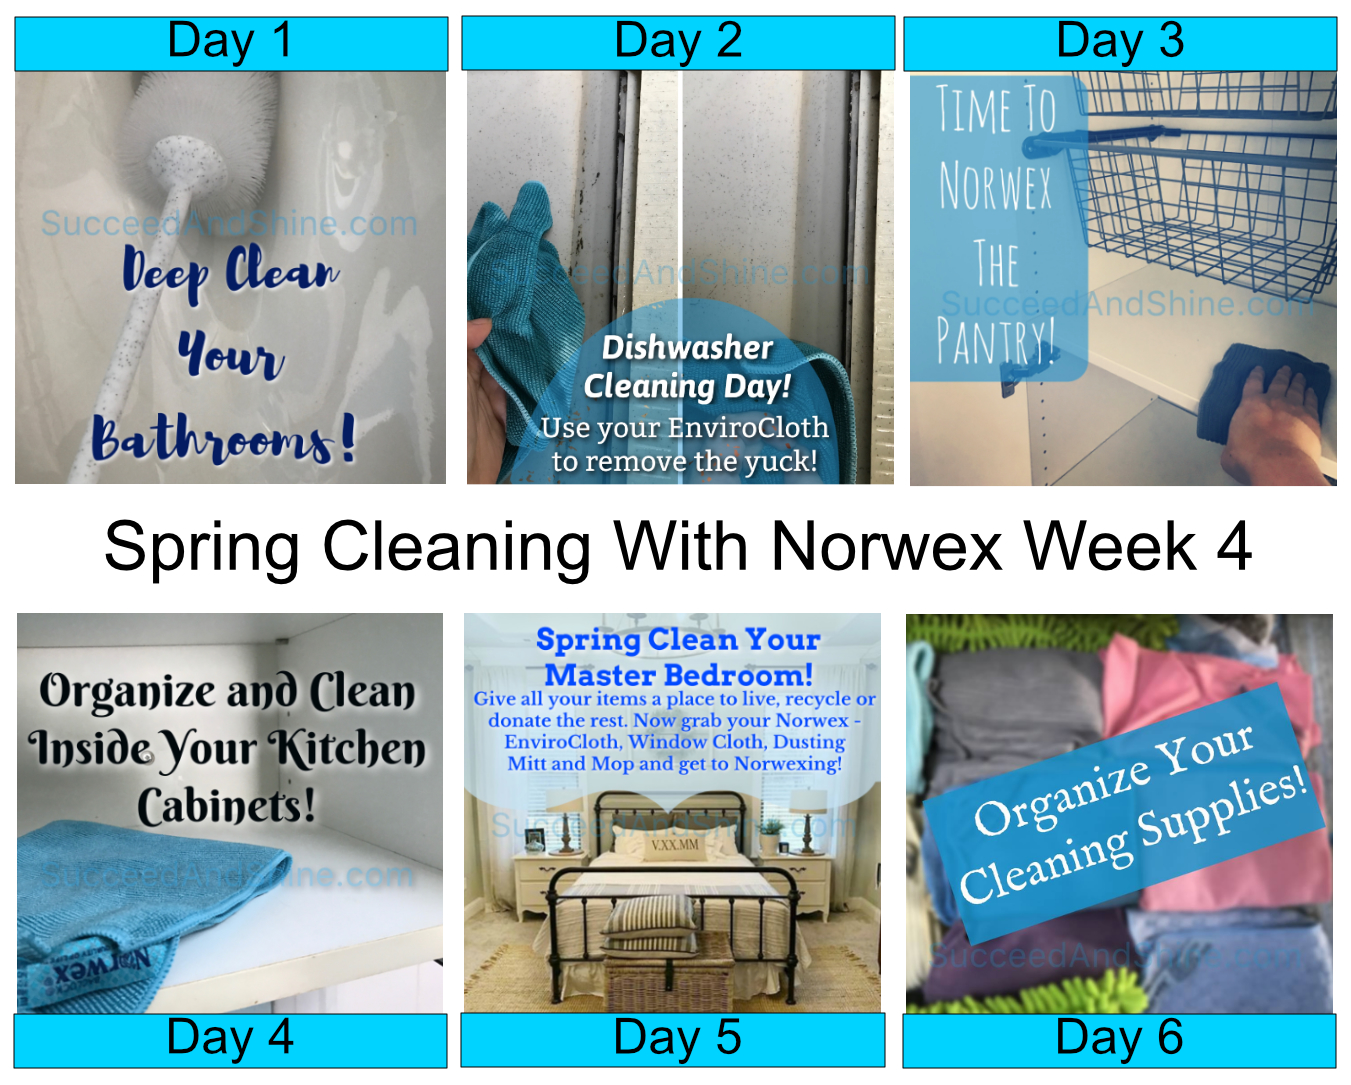 How To Use Norwex For Spring Cleaning – Week 4 – Succeed and Shine